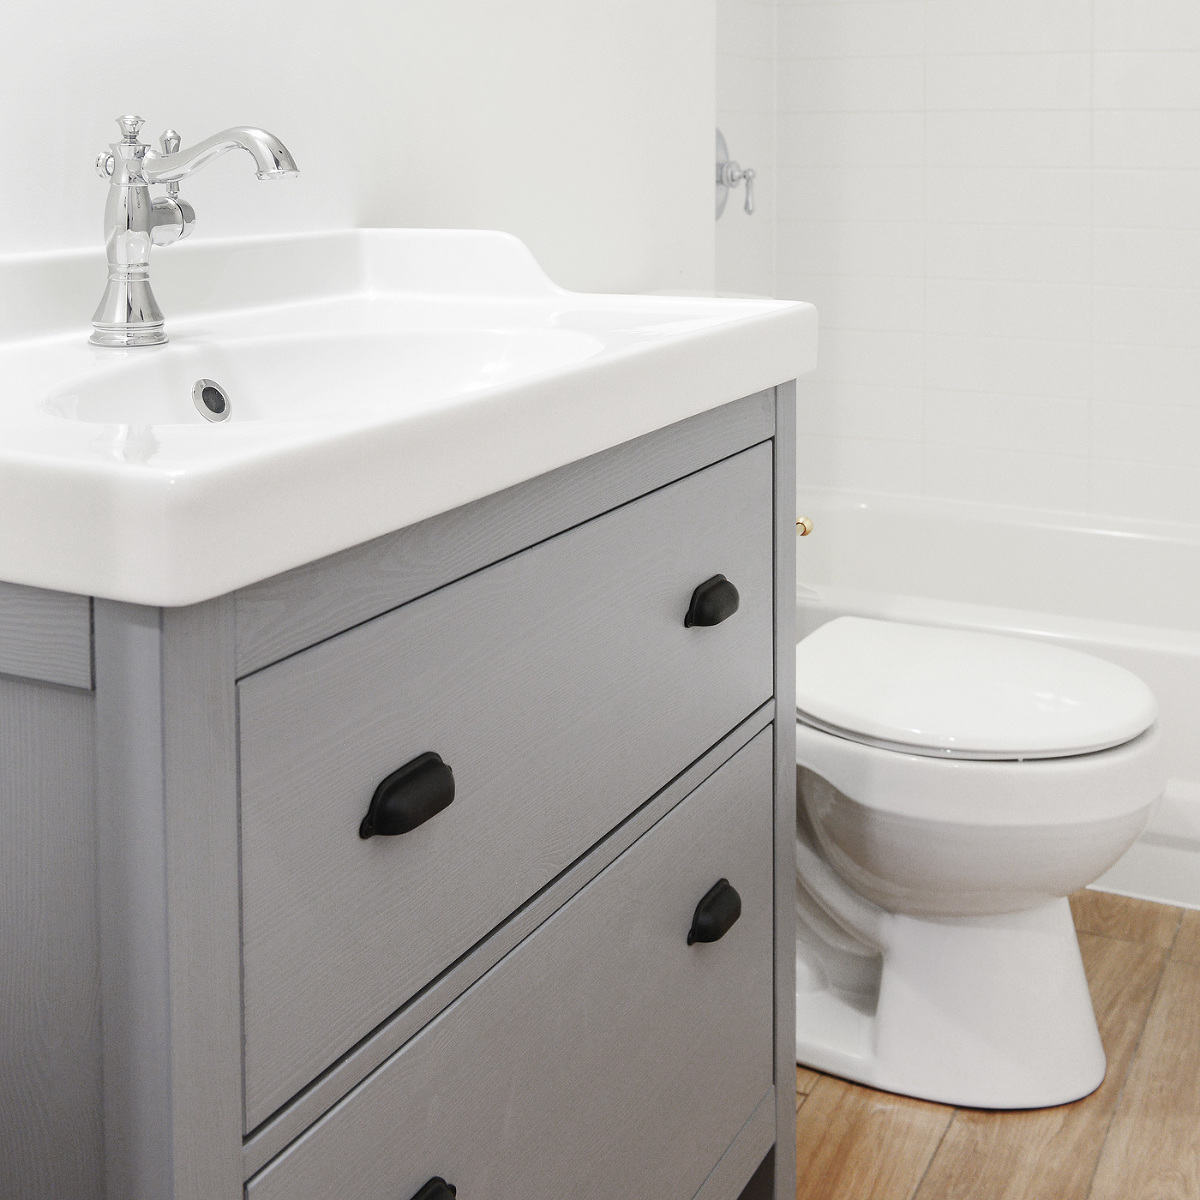 What Makes an IKEA Vanity Stand Out Above the Rest